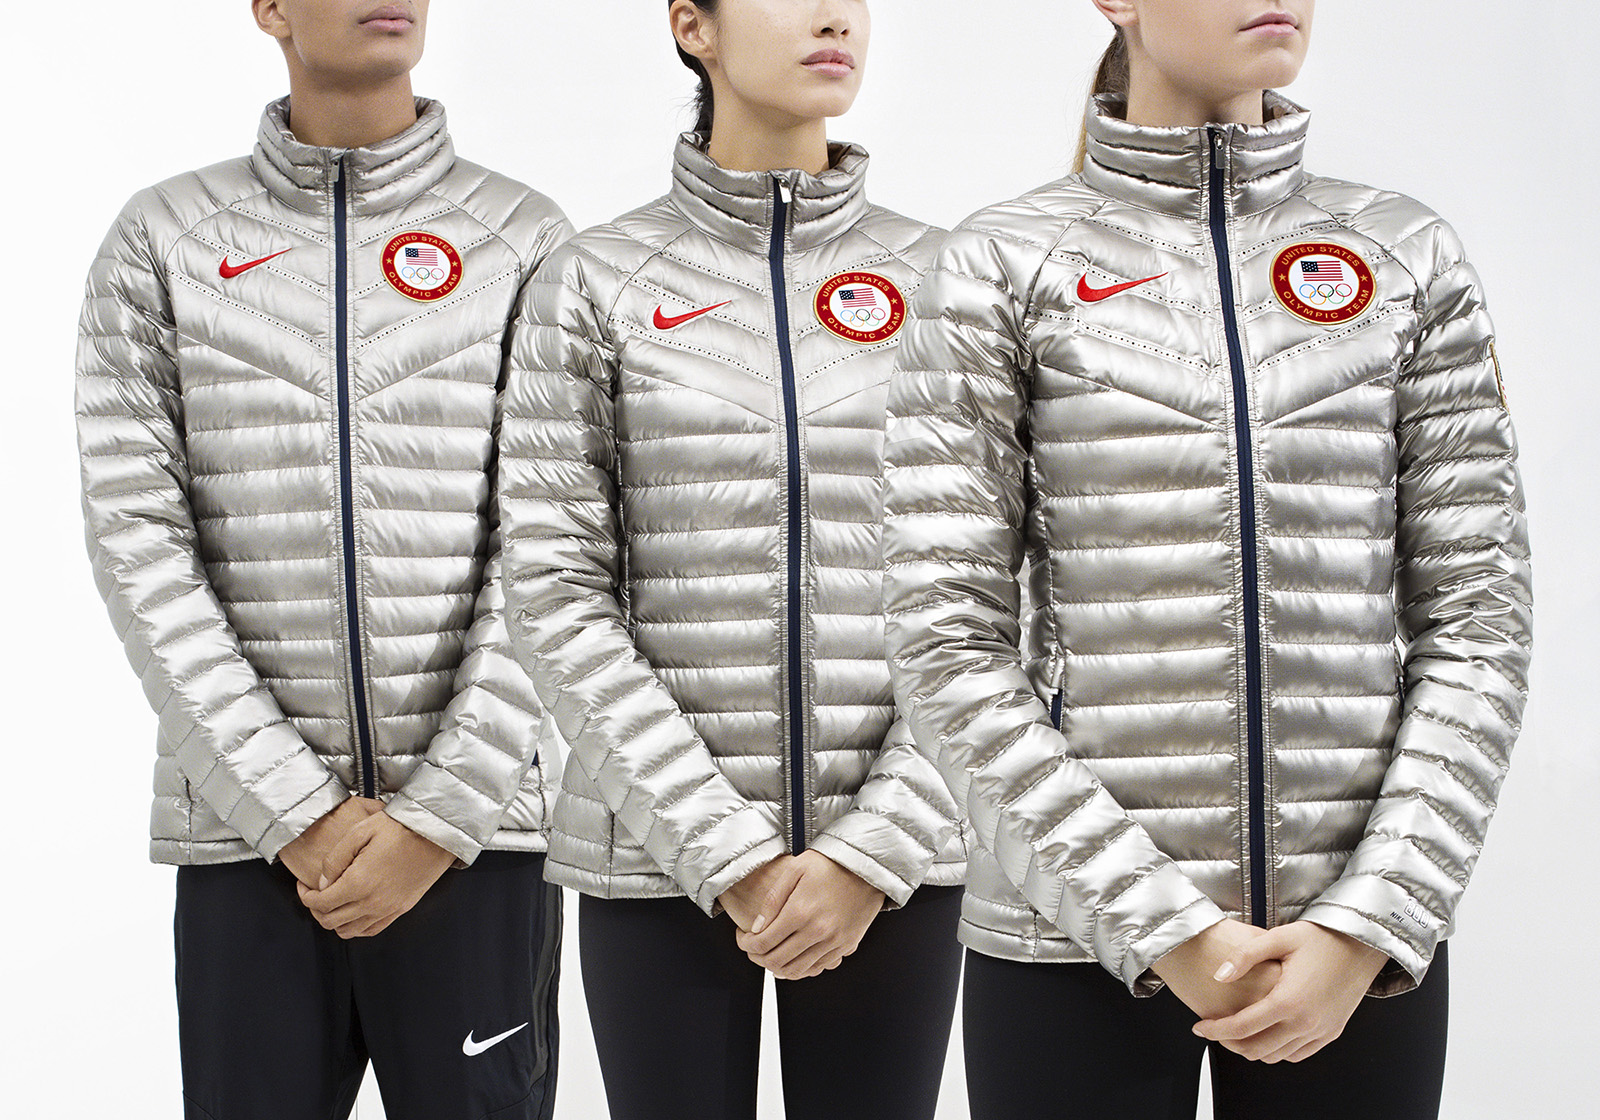 Nike_Team_USA_Winter_Collection_1